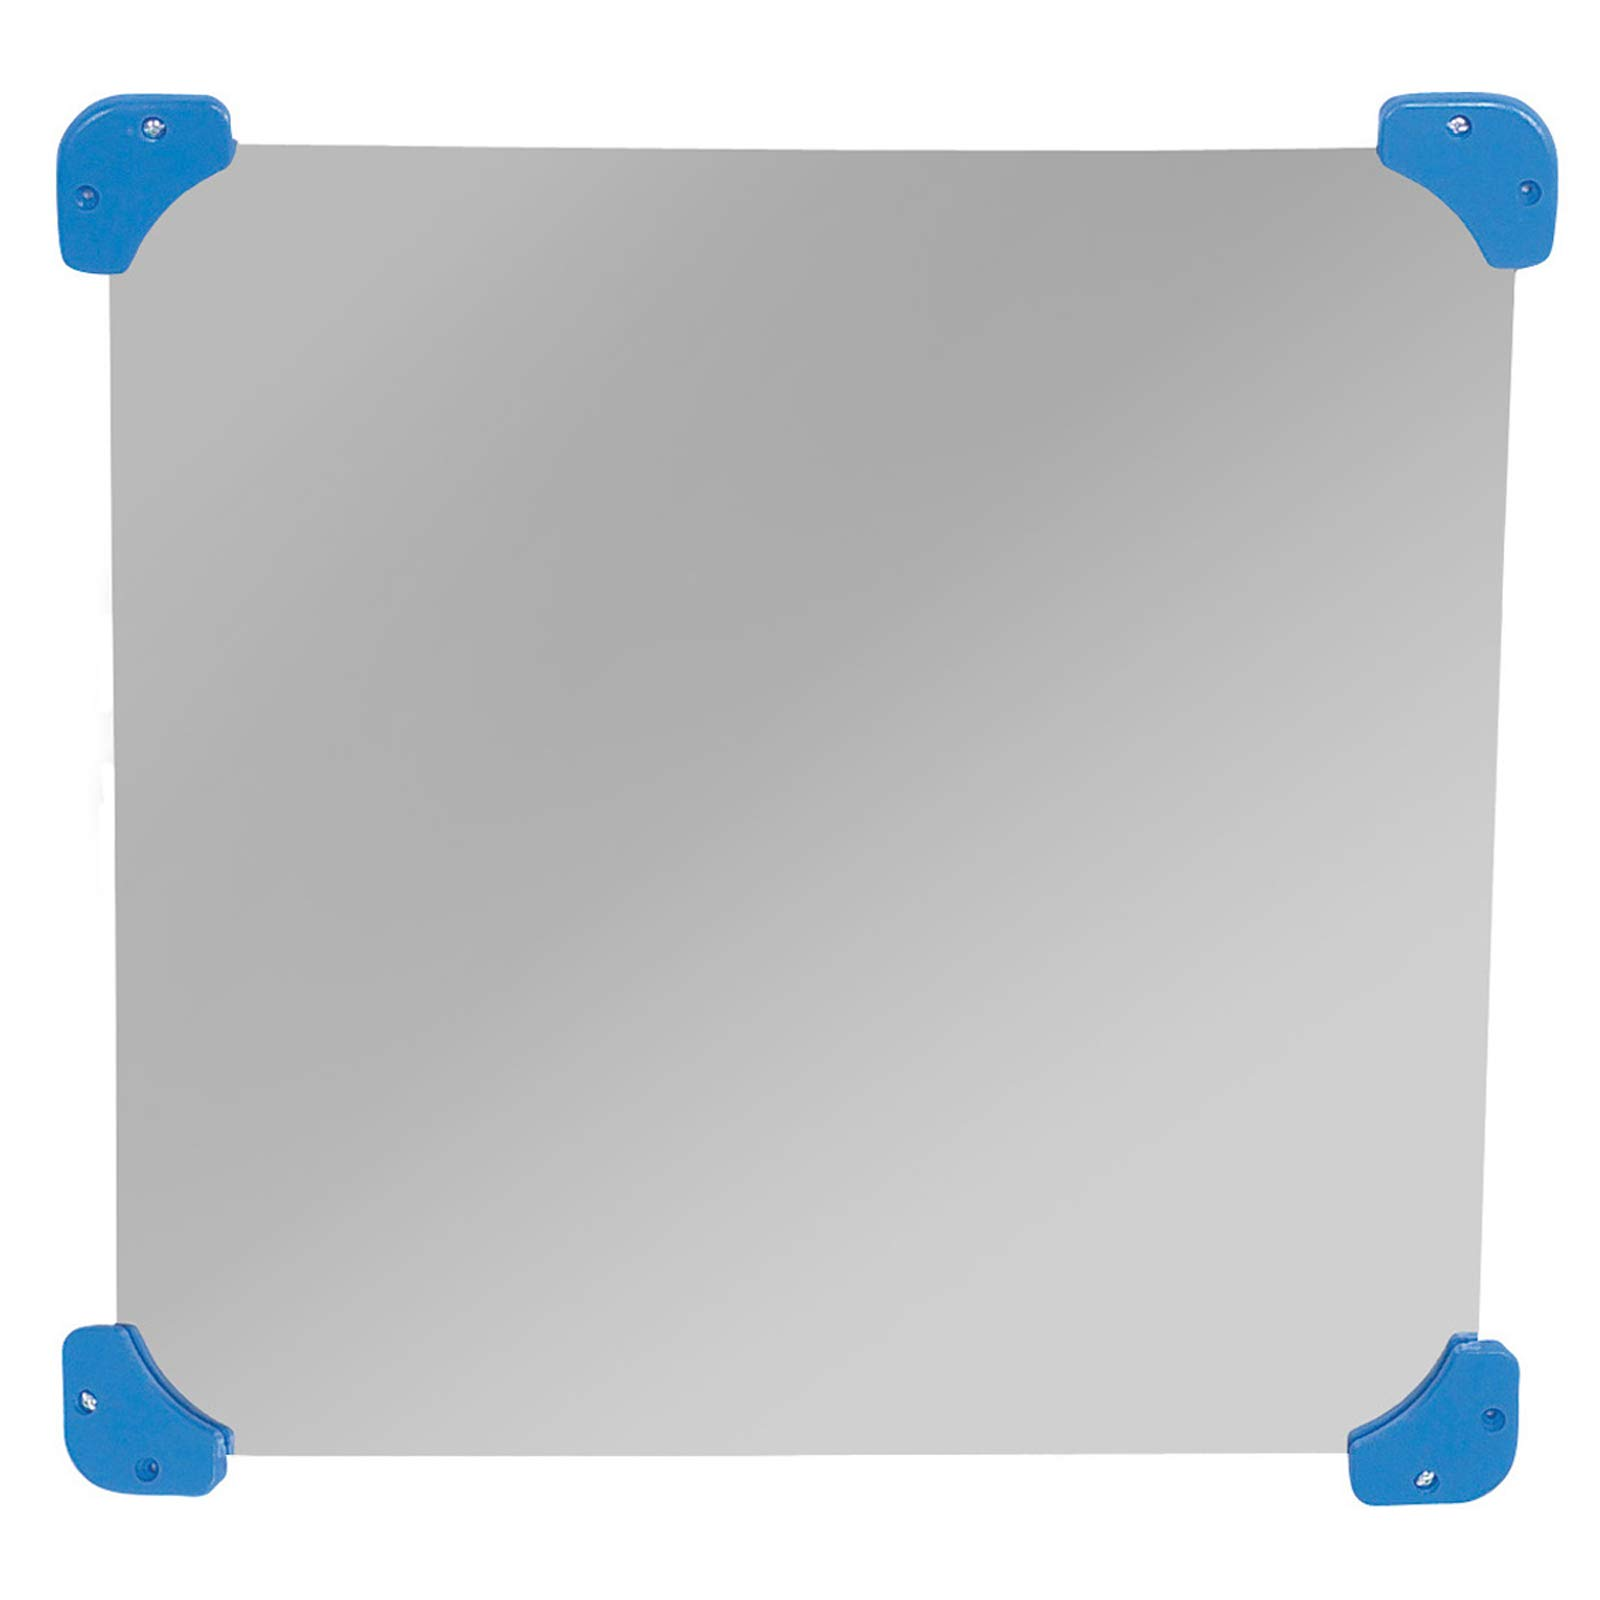 Children's Factory CF-332131-A1 Square Mirror, Primary, 24'' Width, 24'' Length